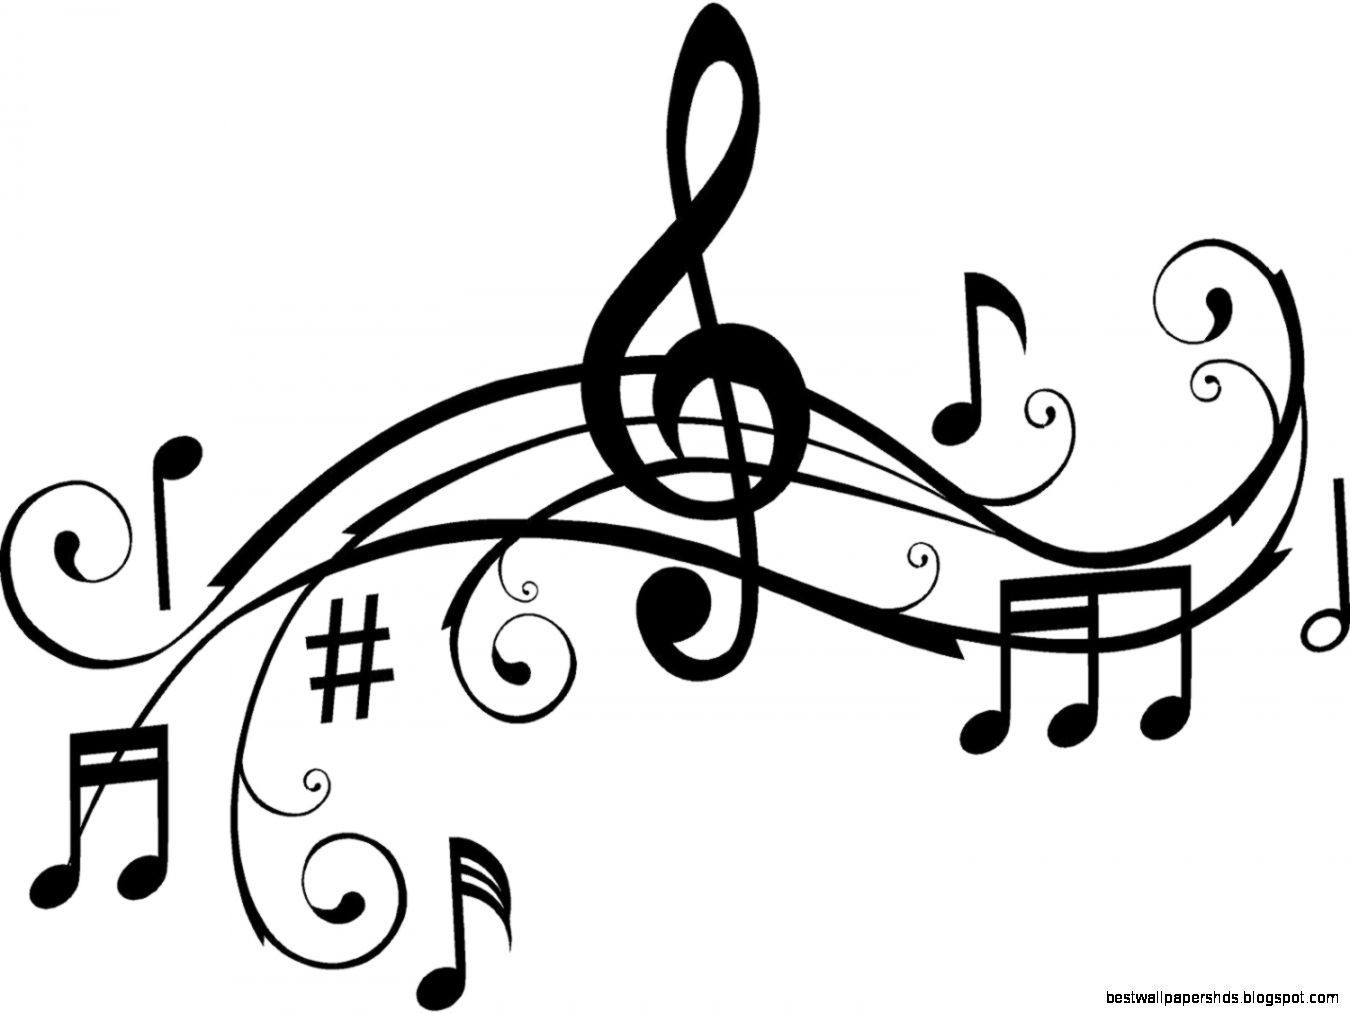 music notes clipart black and white clipart panda free clipart rh pinterest com music notes clip art images music notes clipart black and white